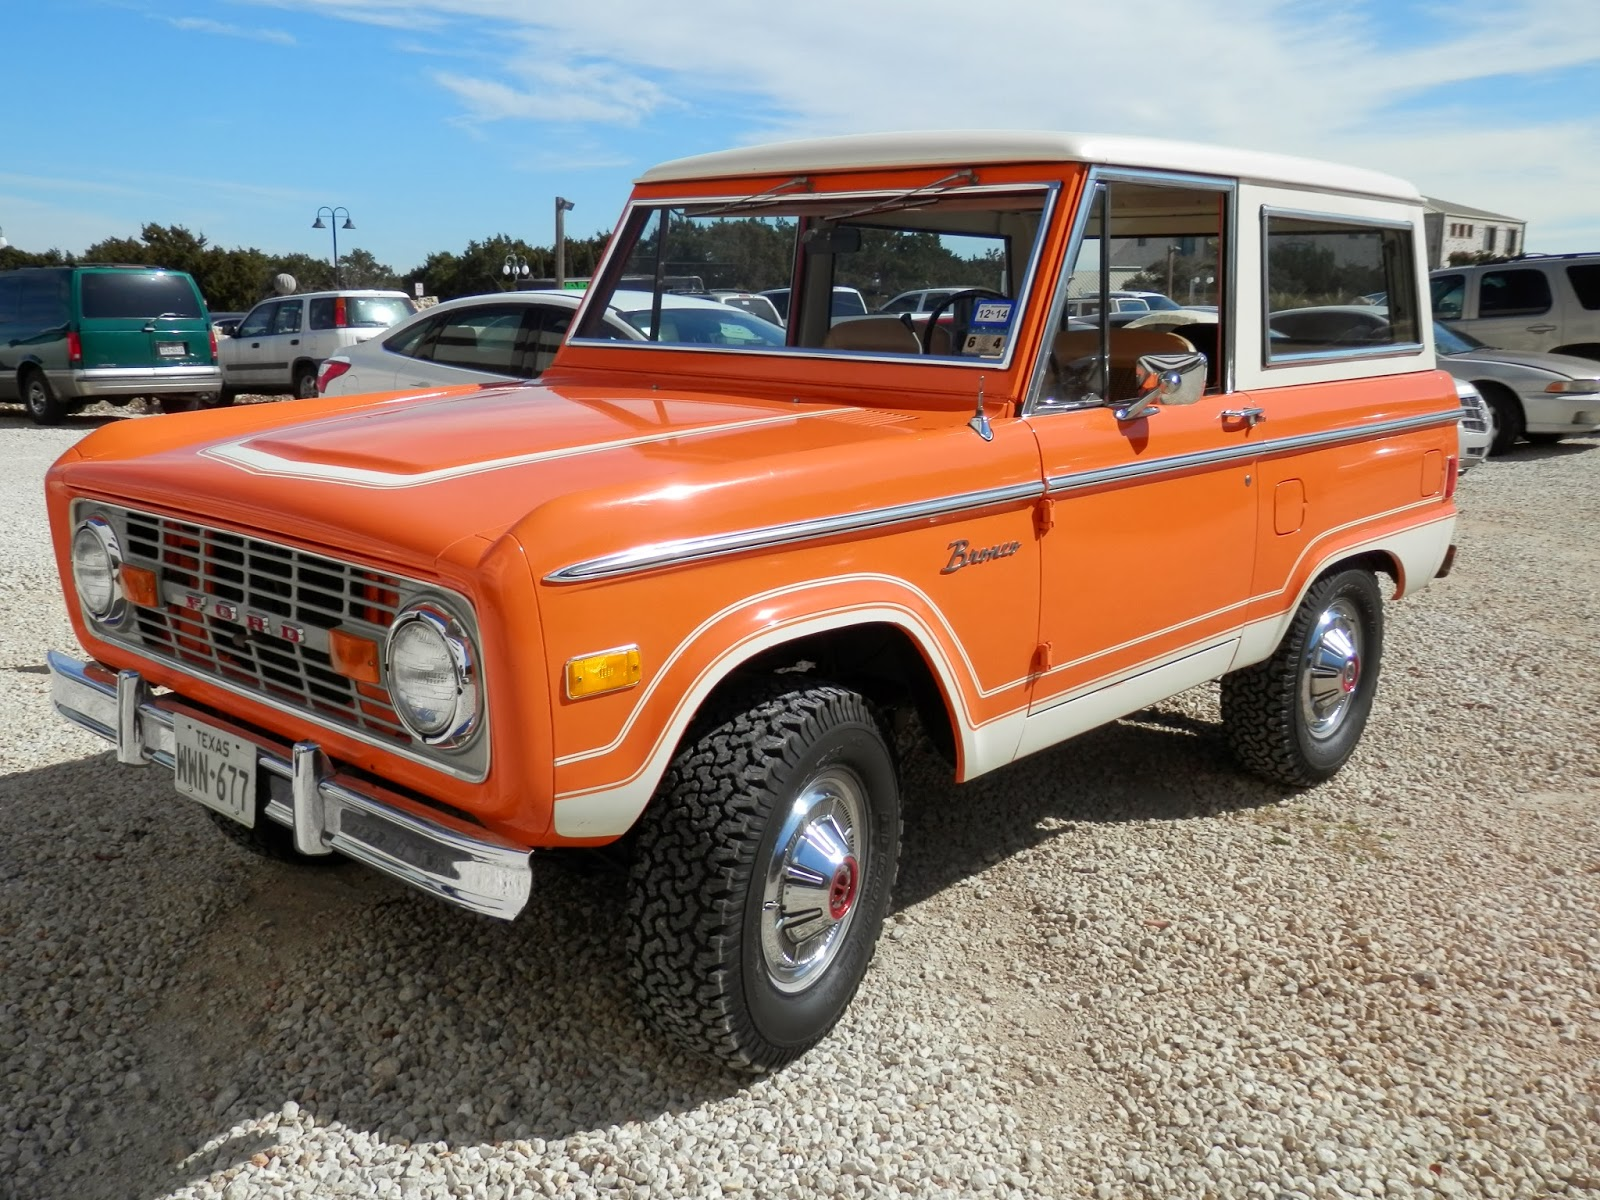 Ford Bronco For Sale Craigslist >> Shifting Gears: Cars and Coffee Roundup February 2014